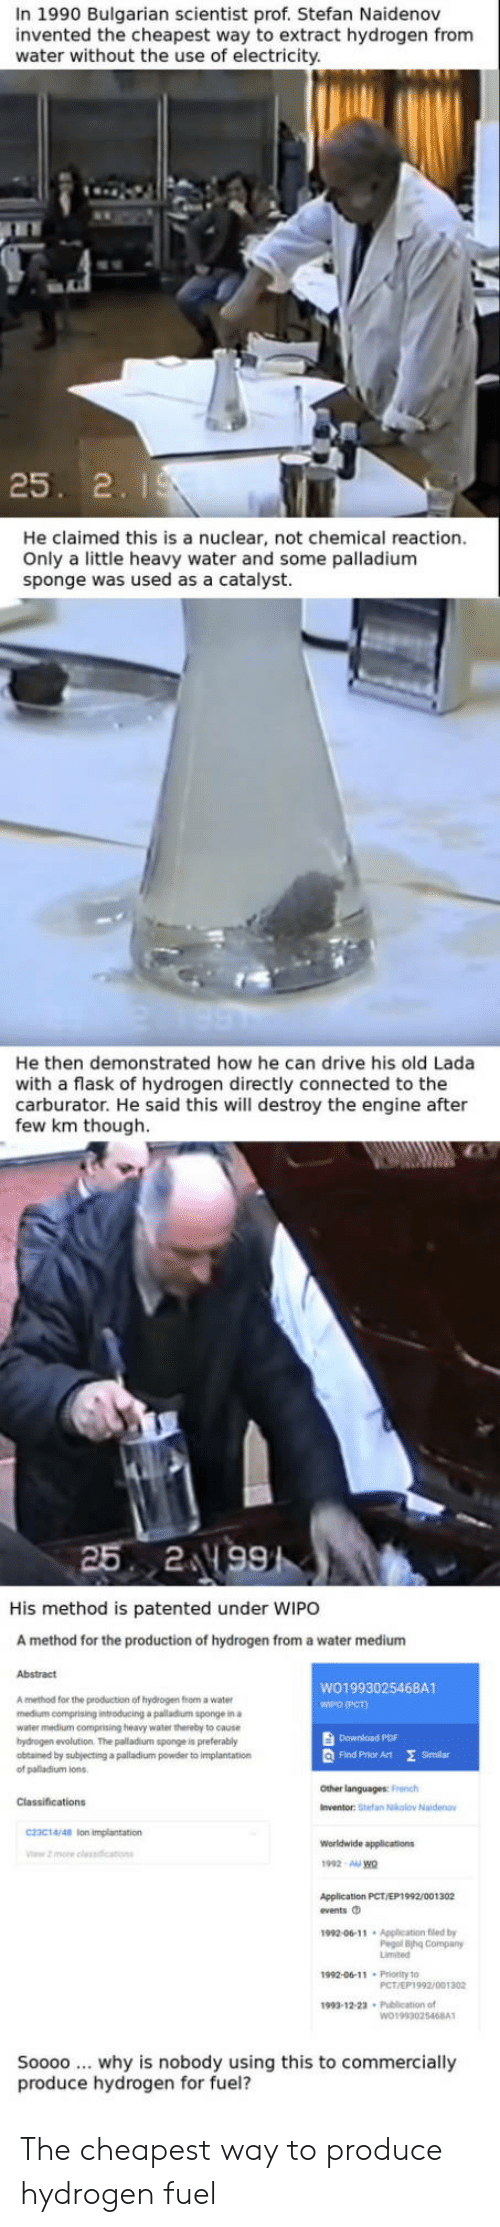 flask: In 1990 Bulgarian scientist prof. Stefan Naidenov  invented the cheapest way to extract hydrogen from  water without the use of electricity  25. 2. I  He claimed this is a nuclear, not chemical reaction.  Only a little heavy water and some palladium  sponge was used  as a catalyst.  He then demonstrated how he can drive his old Lada  with a flask of hydrogen directly connected to the  carburator. He said this will destroy the engine after  few km though  His method is patented under WIPO  A method for the production of hydrogen from a water medium  Abstract  WO1993025468A1  WIPO (PCT)  A method for the production of hydrogen from a water  medium comprising introducing a palladium sponge in a  water medium comprising heavy water thereby to eause  hydrogen evolution. The palladium sponge is preterably  obtained by subjecting a palladium powder to implantation  of palladium ions  Download PDF  Q Find Prhor Art E  Similan  Other languages: French  Inventor: Stefan Nkolov Naide  C23C14/48 lon impiantation  1992 AU wo  Application PCT/EP1992/001302  fvents O  1992-06-11 Application fled by  Pegol ihg Company  1992-00-11 Prority to  PCT/EP1992/001302  1993-12-23 Publication of  Soooo why is nobody using this to commercially  produce hydrogen for fuel? The cheapest way to produce hydrogen fuel